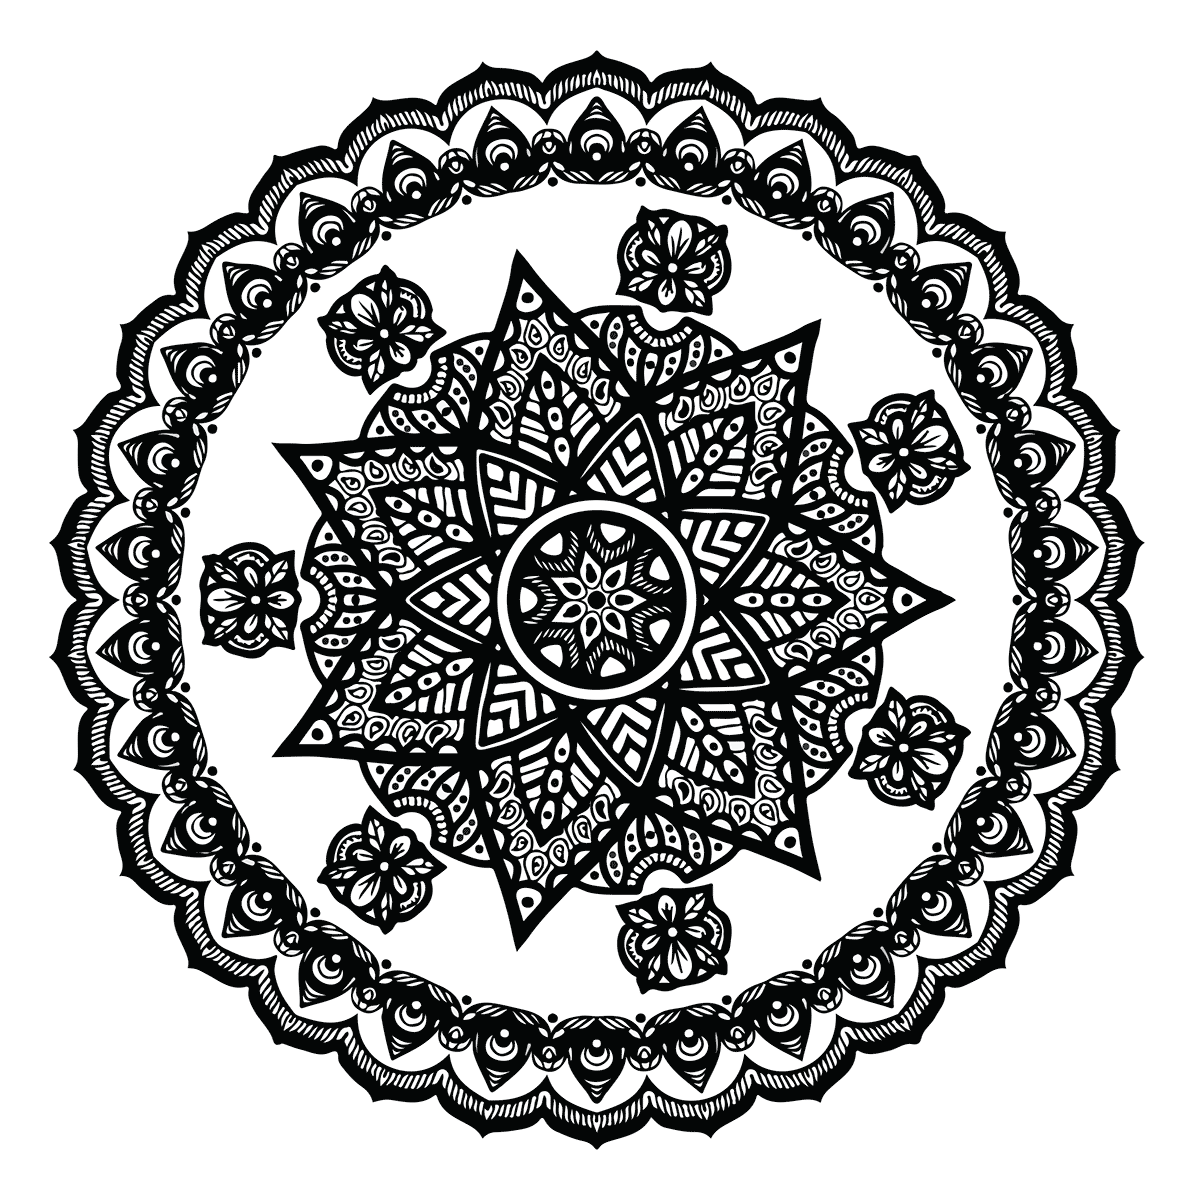 Free Floral Mandala Coloring Page Print or Download | Babadoodle ...